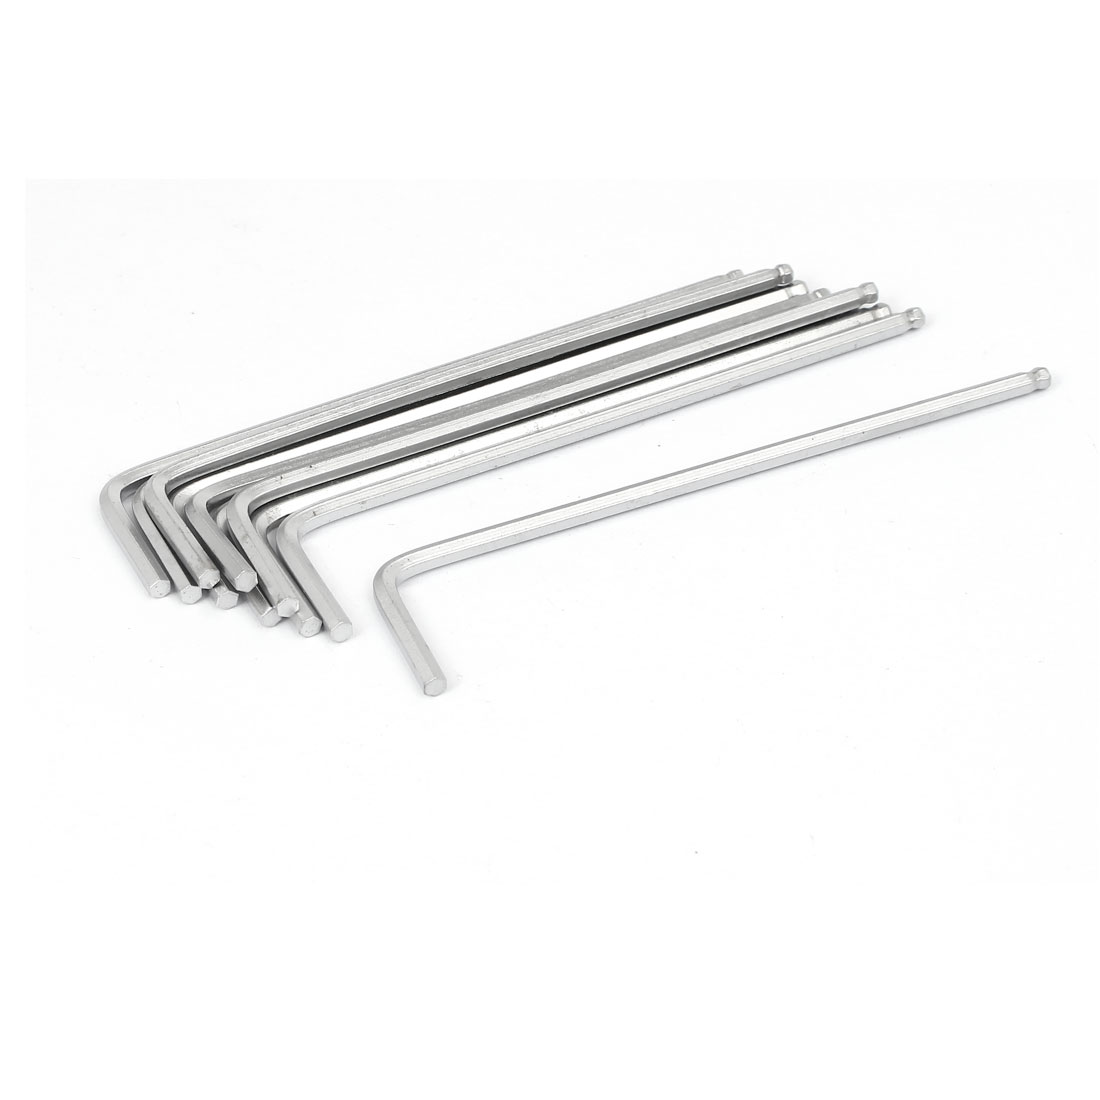 Metal L Shaped Ball Ended Metric Hex Key Wrench Repair Tool 3mm 10pcs